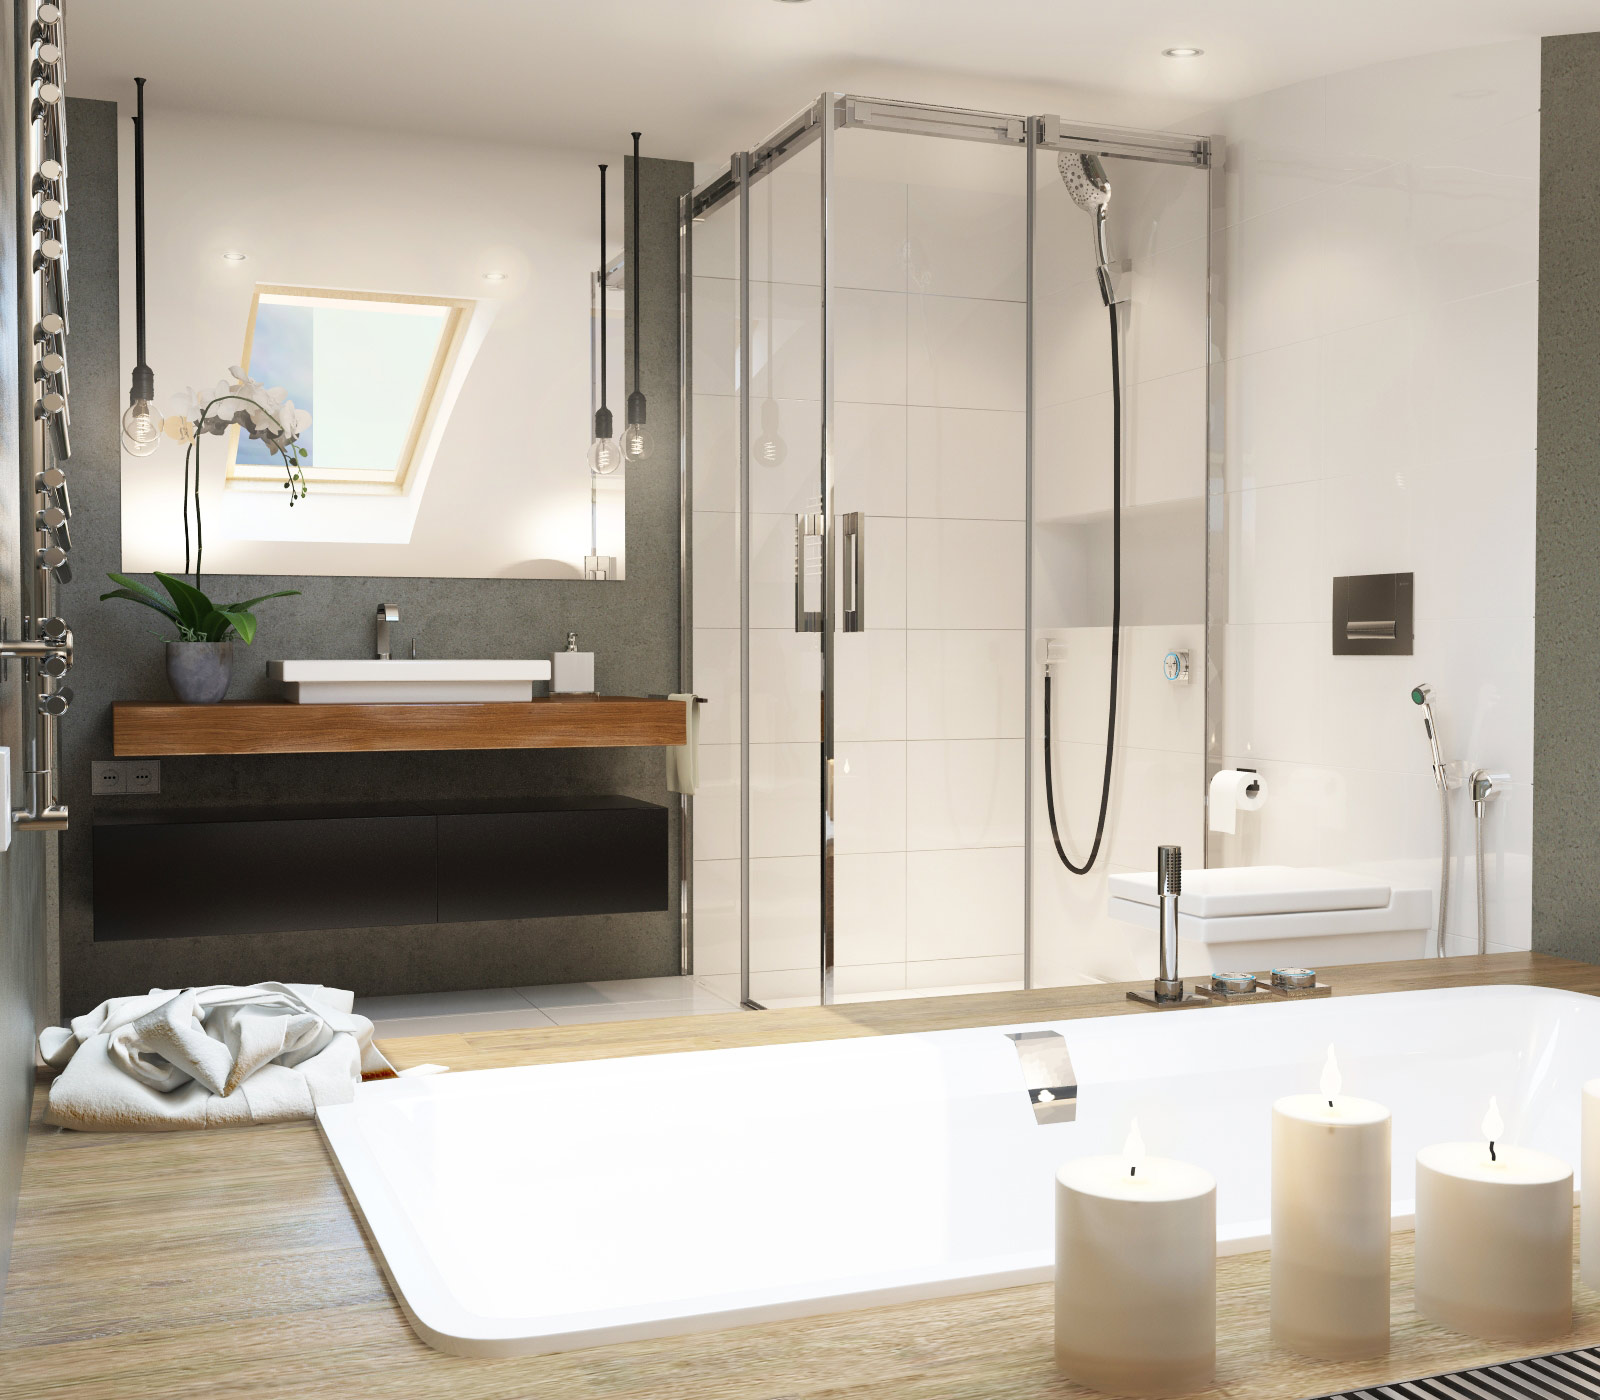 Bathroom with curved ceiling